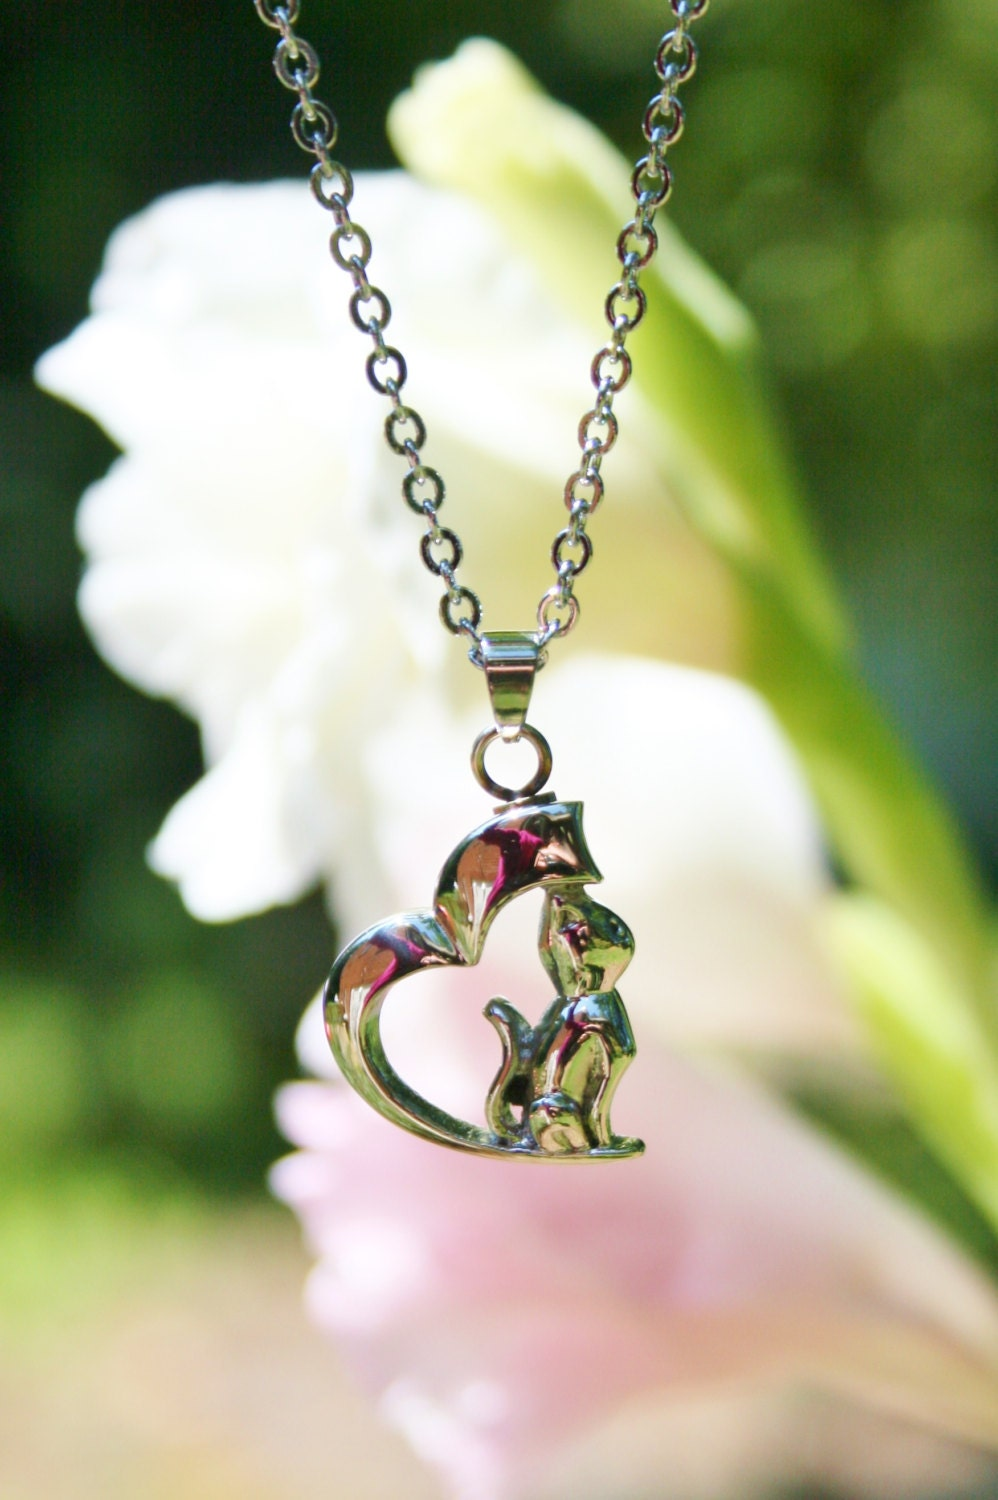 Pet cat cremation jewelry for ashes urn necklace ash pendant for Jewelry to hold cremation ashes